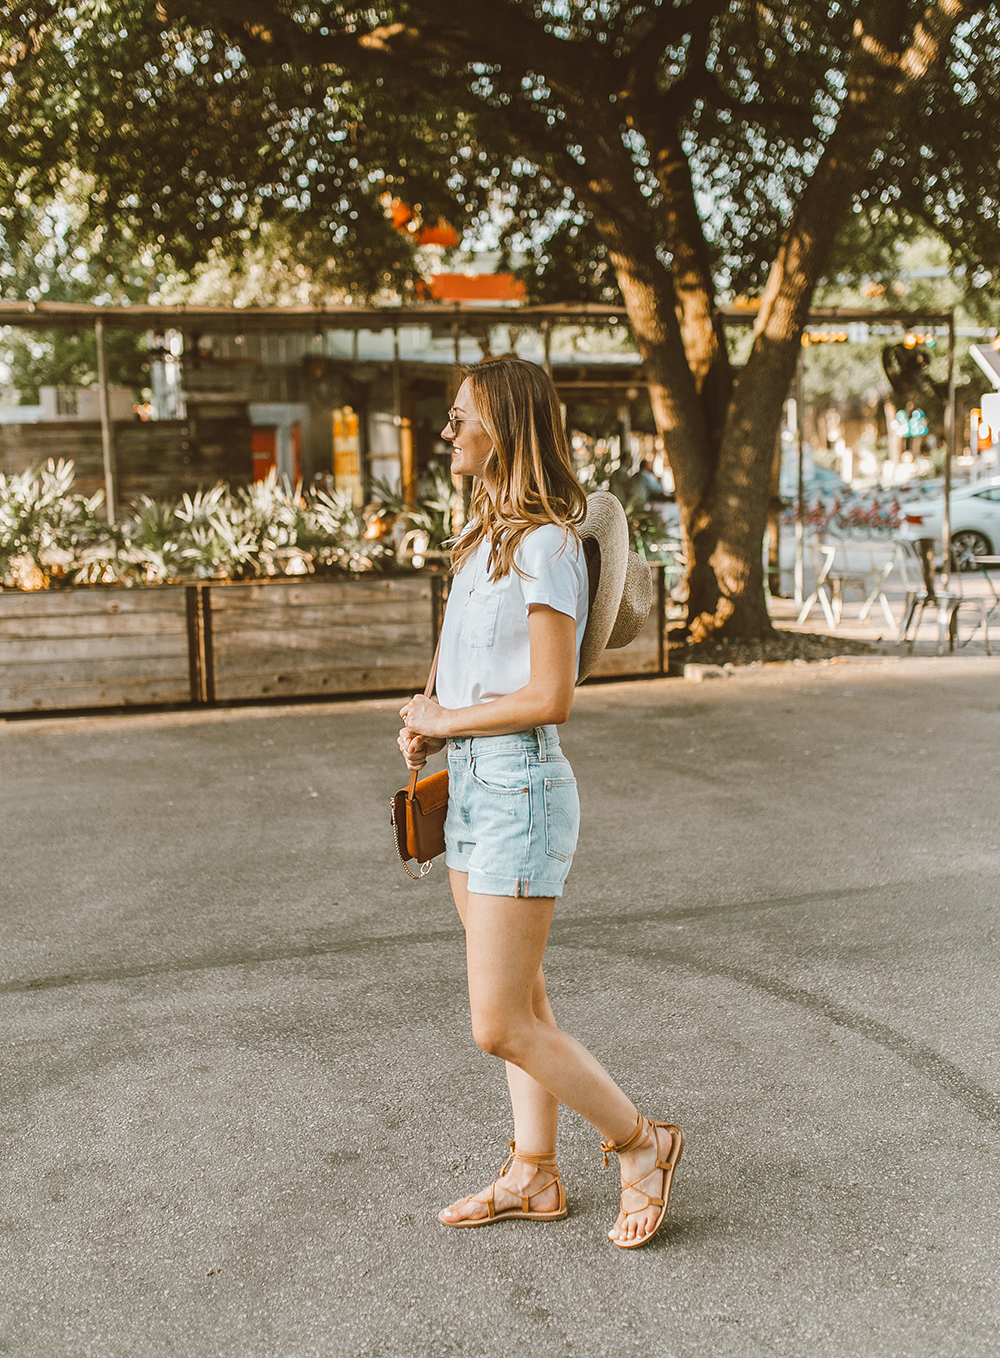 livvyland-blog-olivia-watson-austin-texas-fashion-style-blogger-what-to-wear-levis-501-denim-shorts-festival-outfit-idea-10